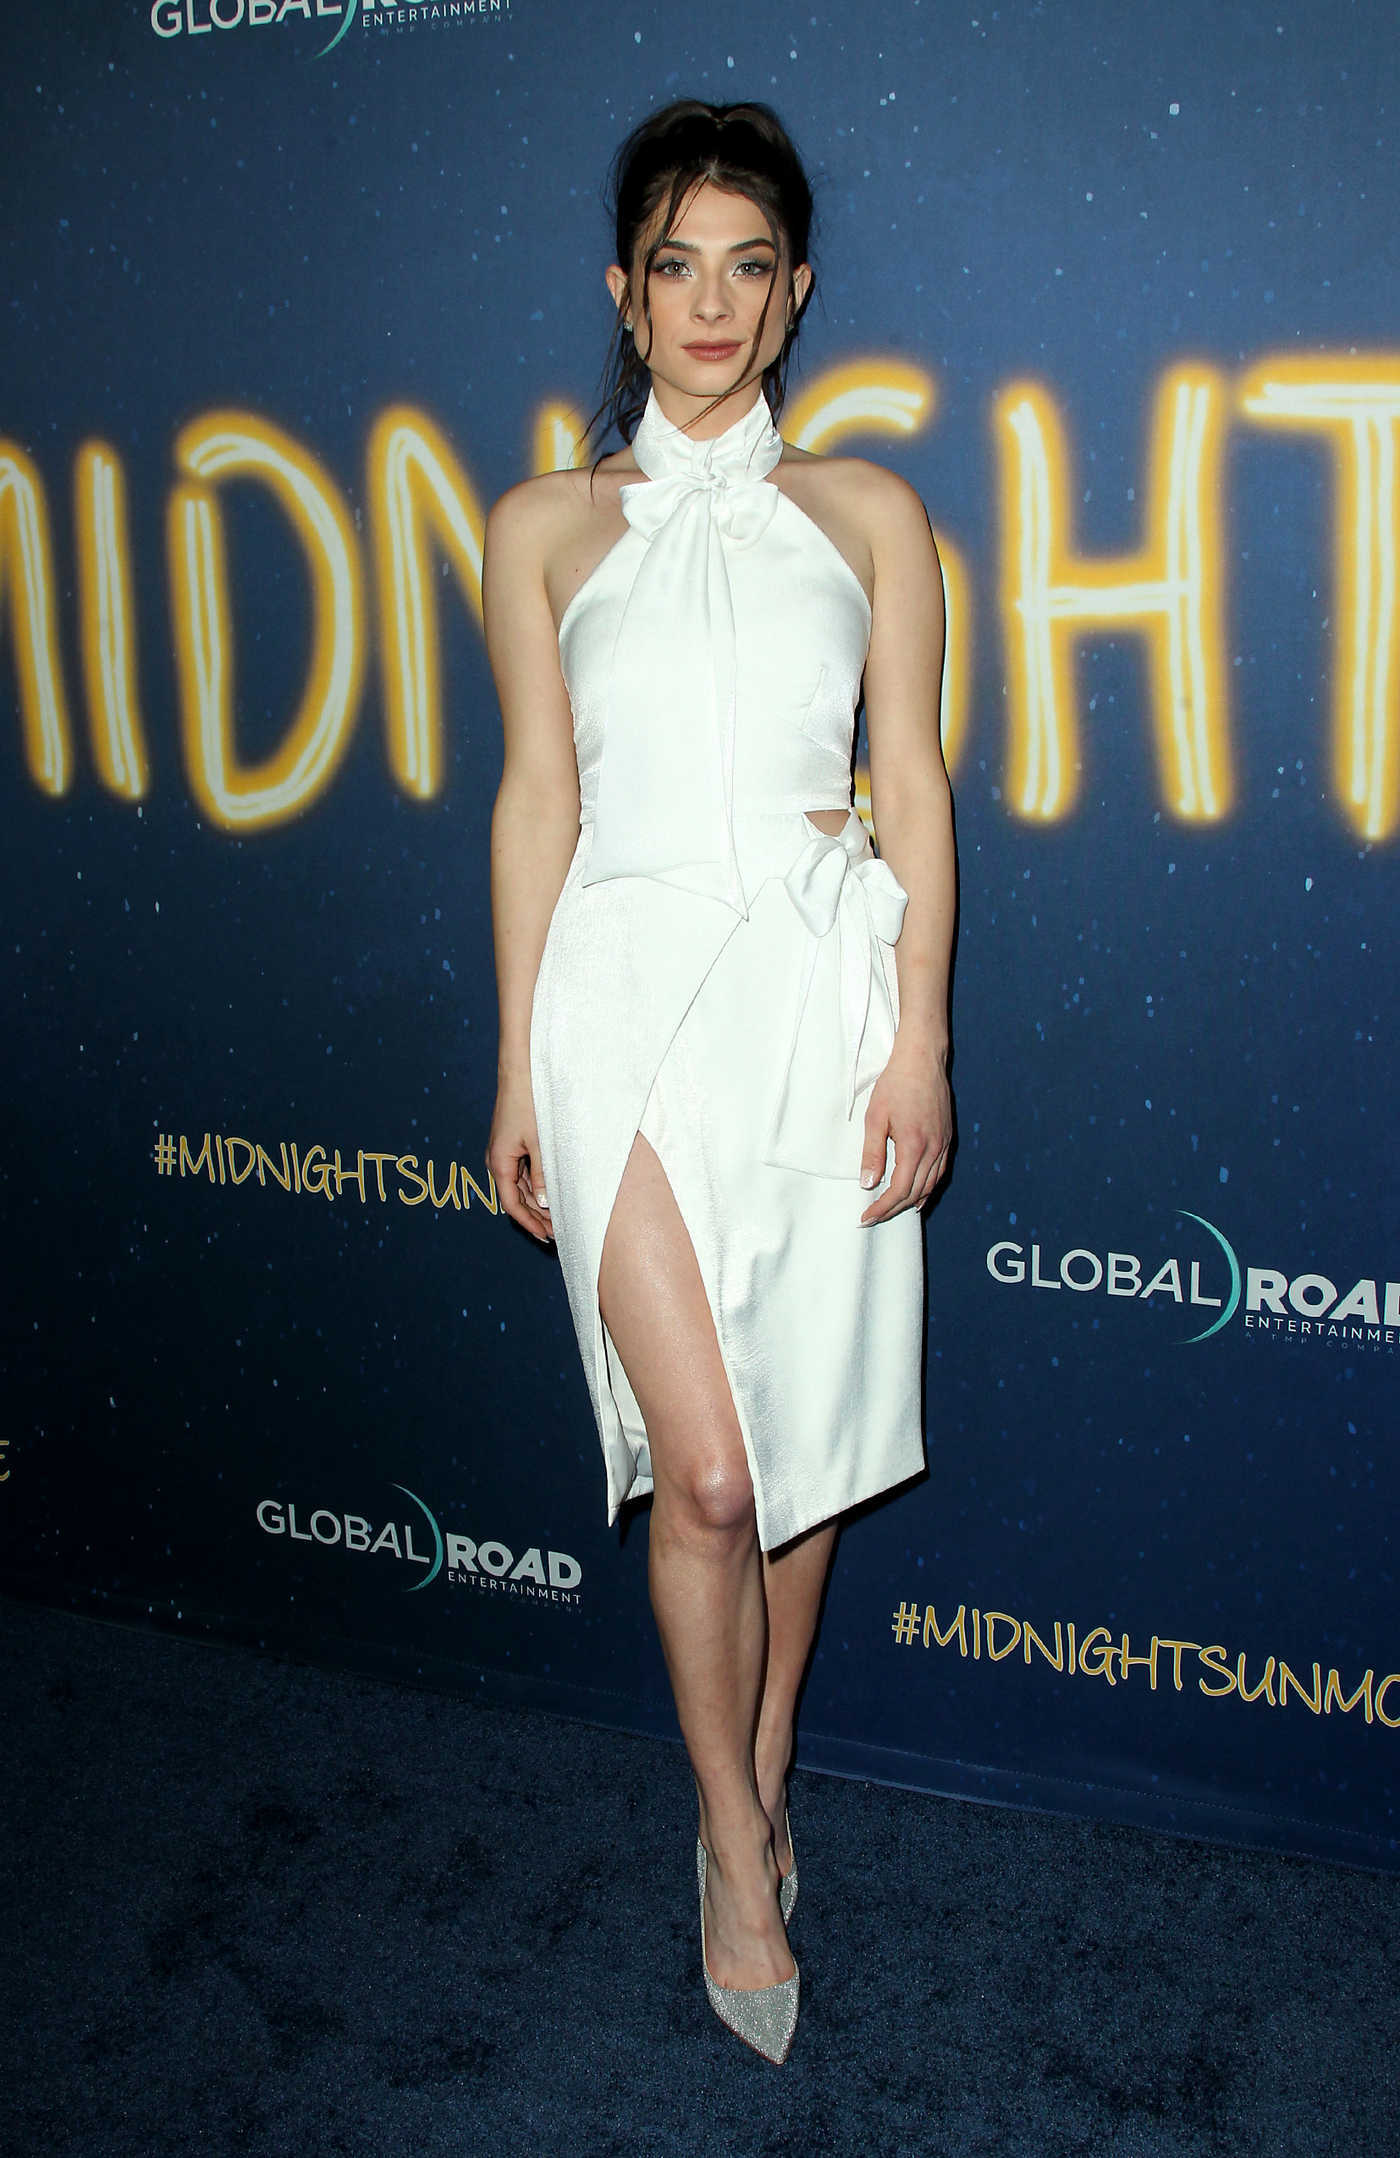 Niki Koss at the Midnight Sun Premiere in Los Angeles 03/15/2018